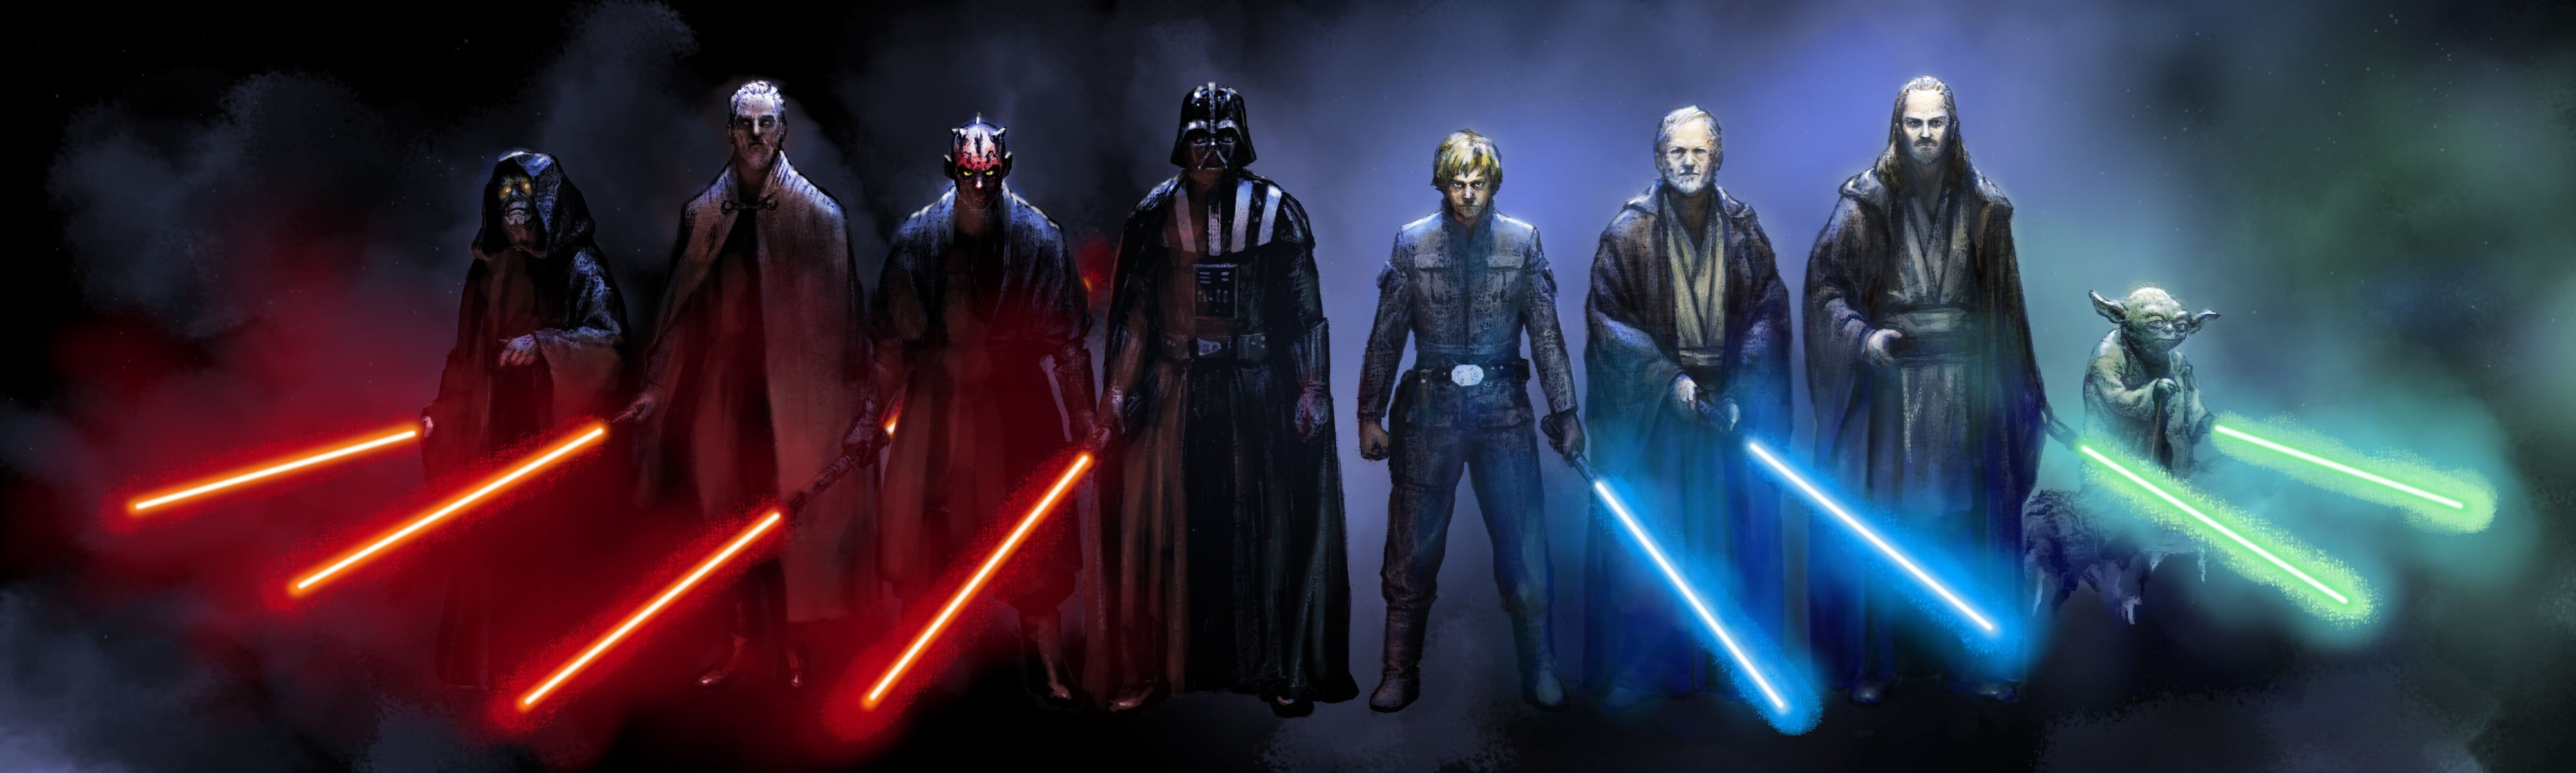 Jedi Vs Sith Wallpapers Top Free Jedi Vs Sith Backgrounds Wallpaperaccess